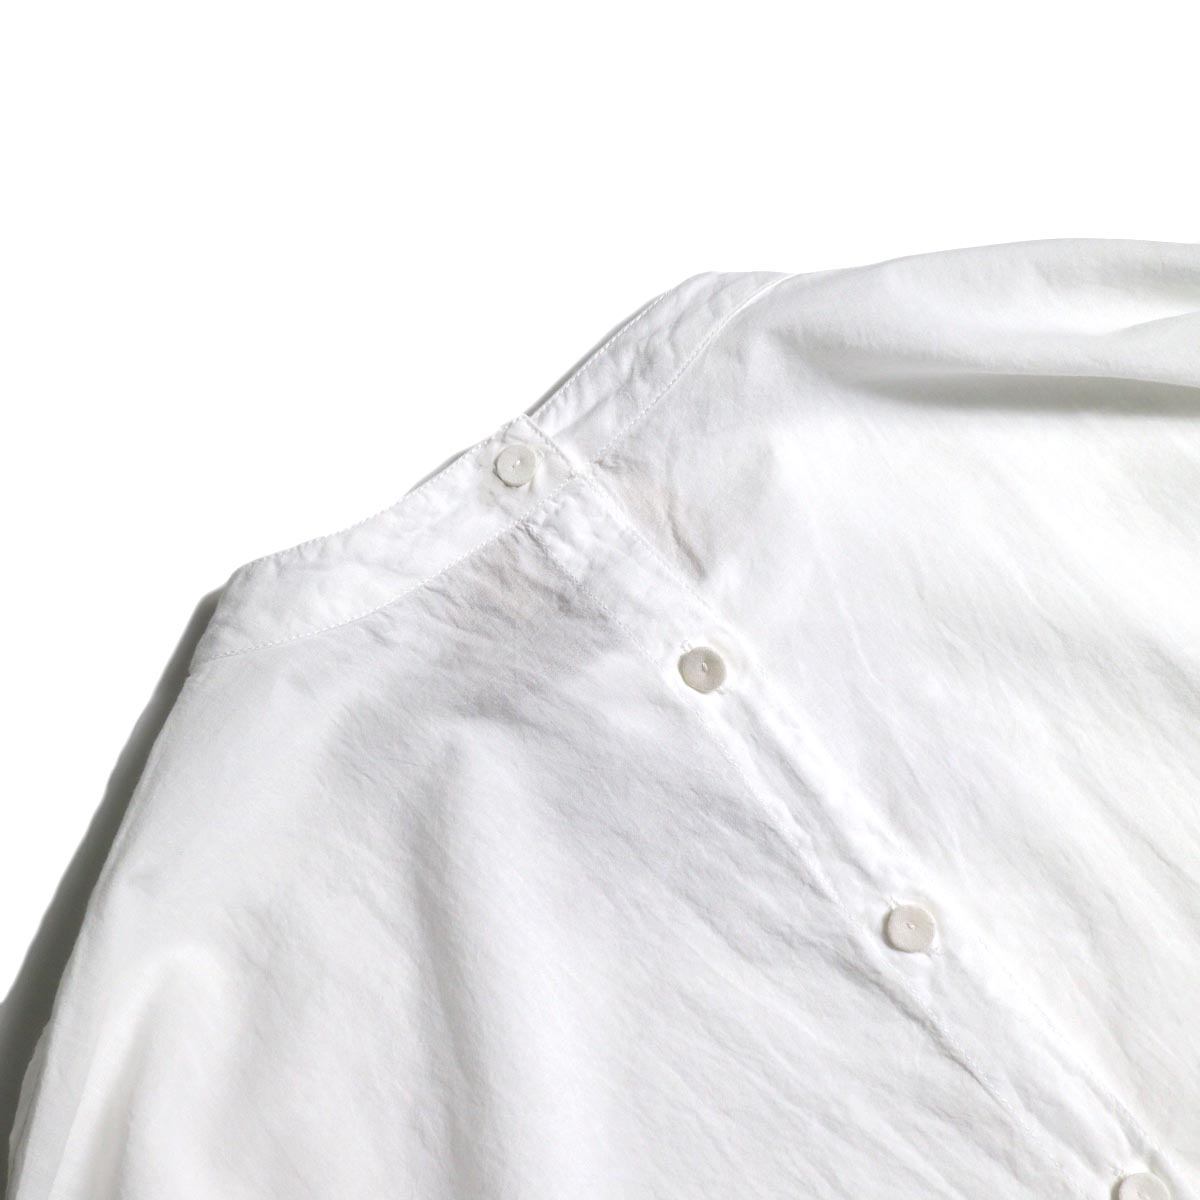 maison de soil / BACK OPENING STAND COLLAR SHIRTS(WHITE)くるみボタン